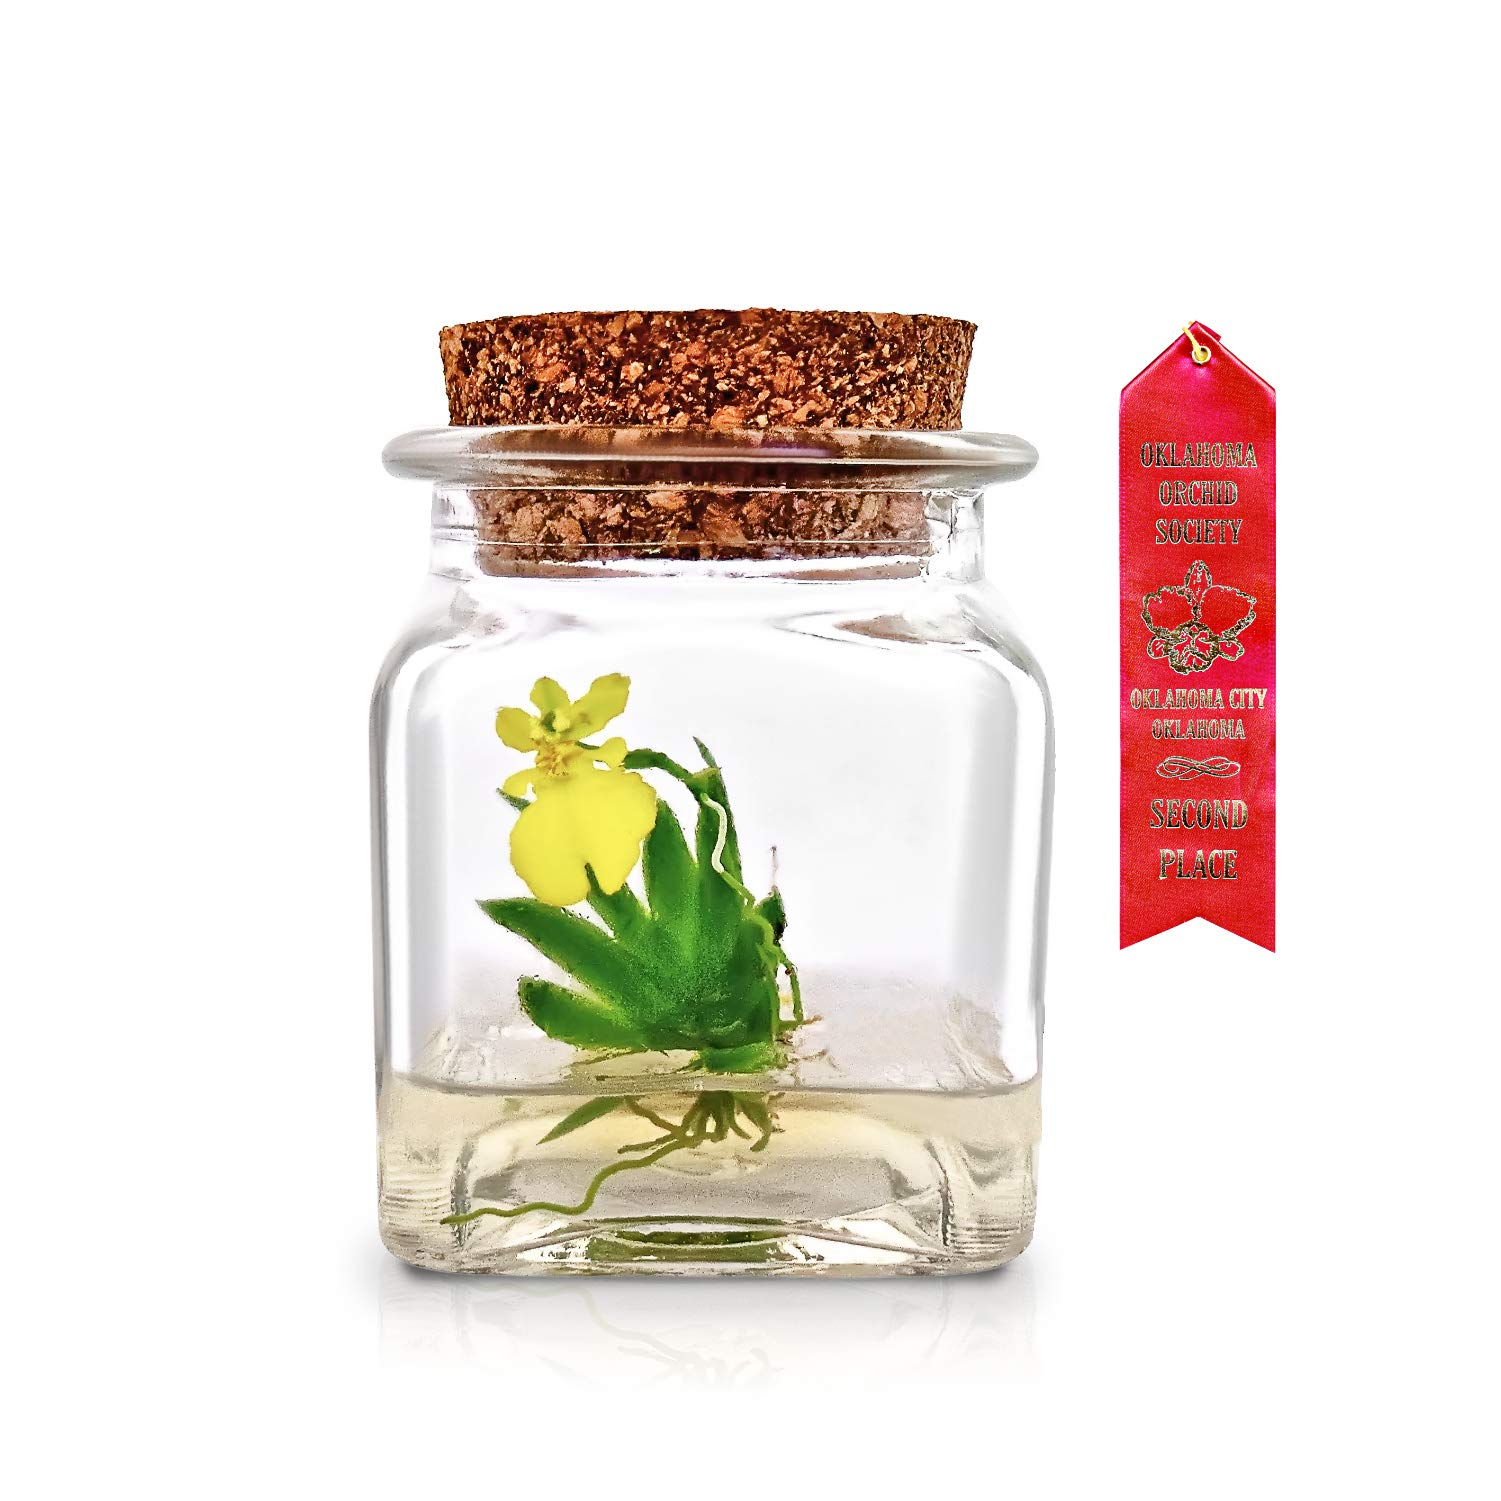 Award Winning, Maintenance Free Orchid Terrarium - Psygmorchis Pusilla - Miniature, No Green Thumb Necessary, Great for Work, Home, Unique Gift! Restock Everyday